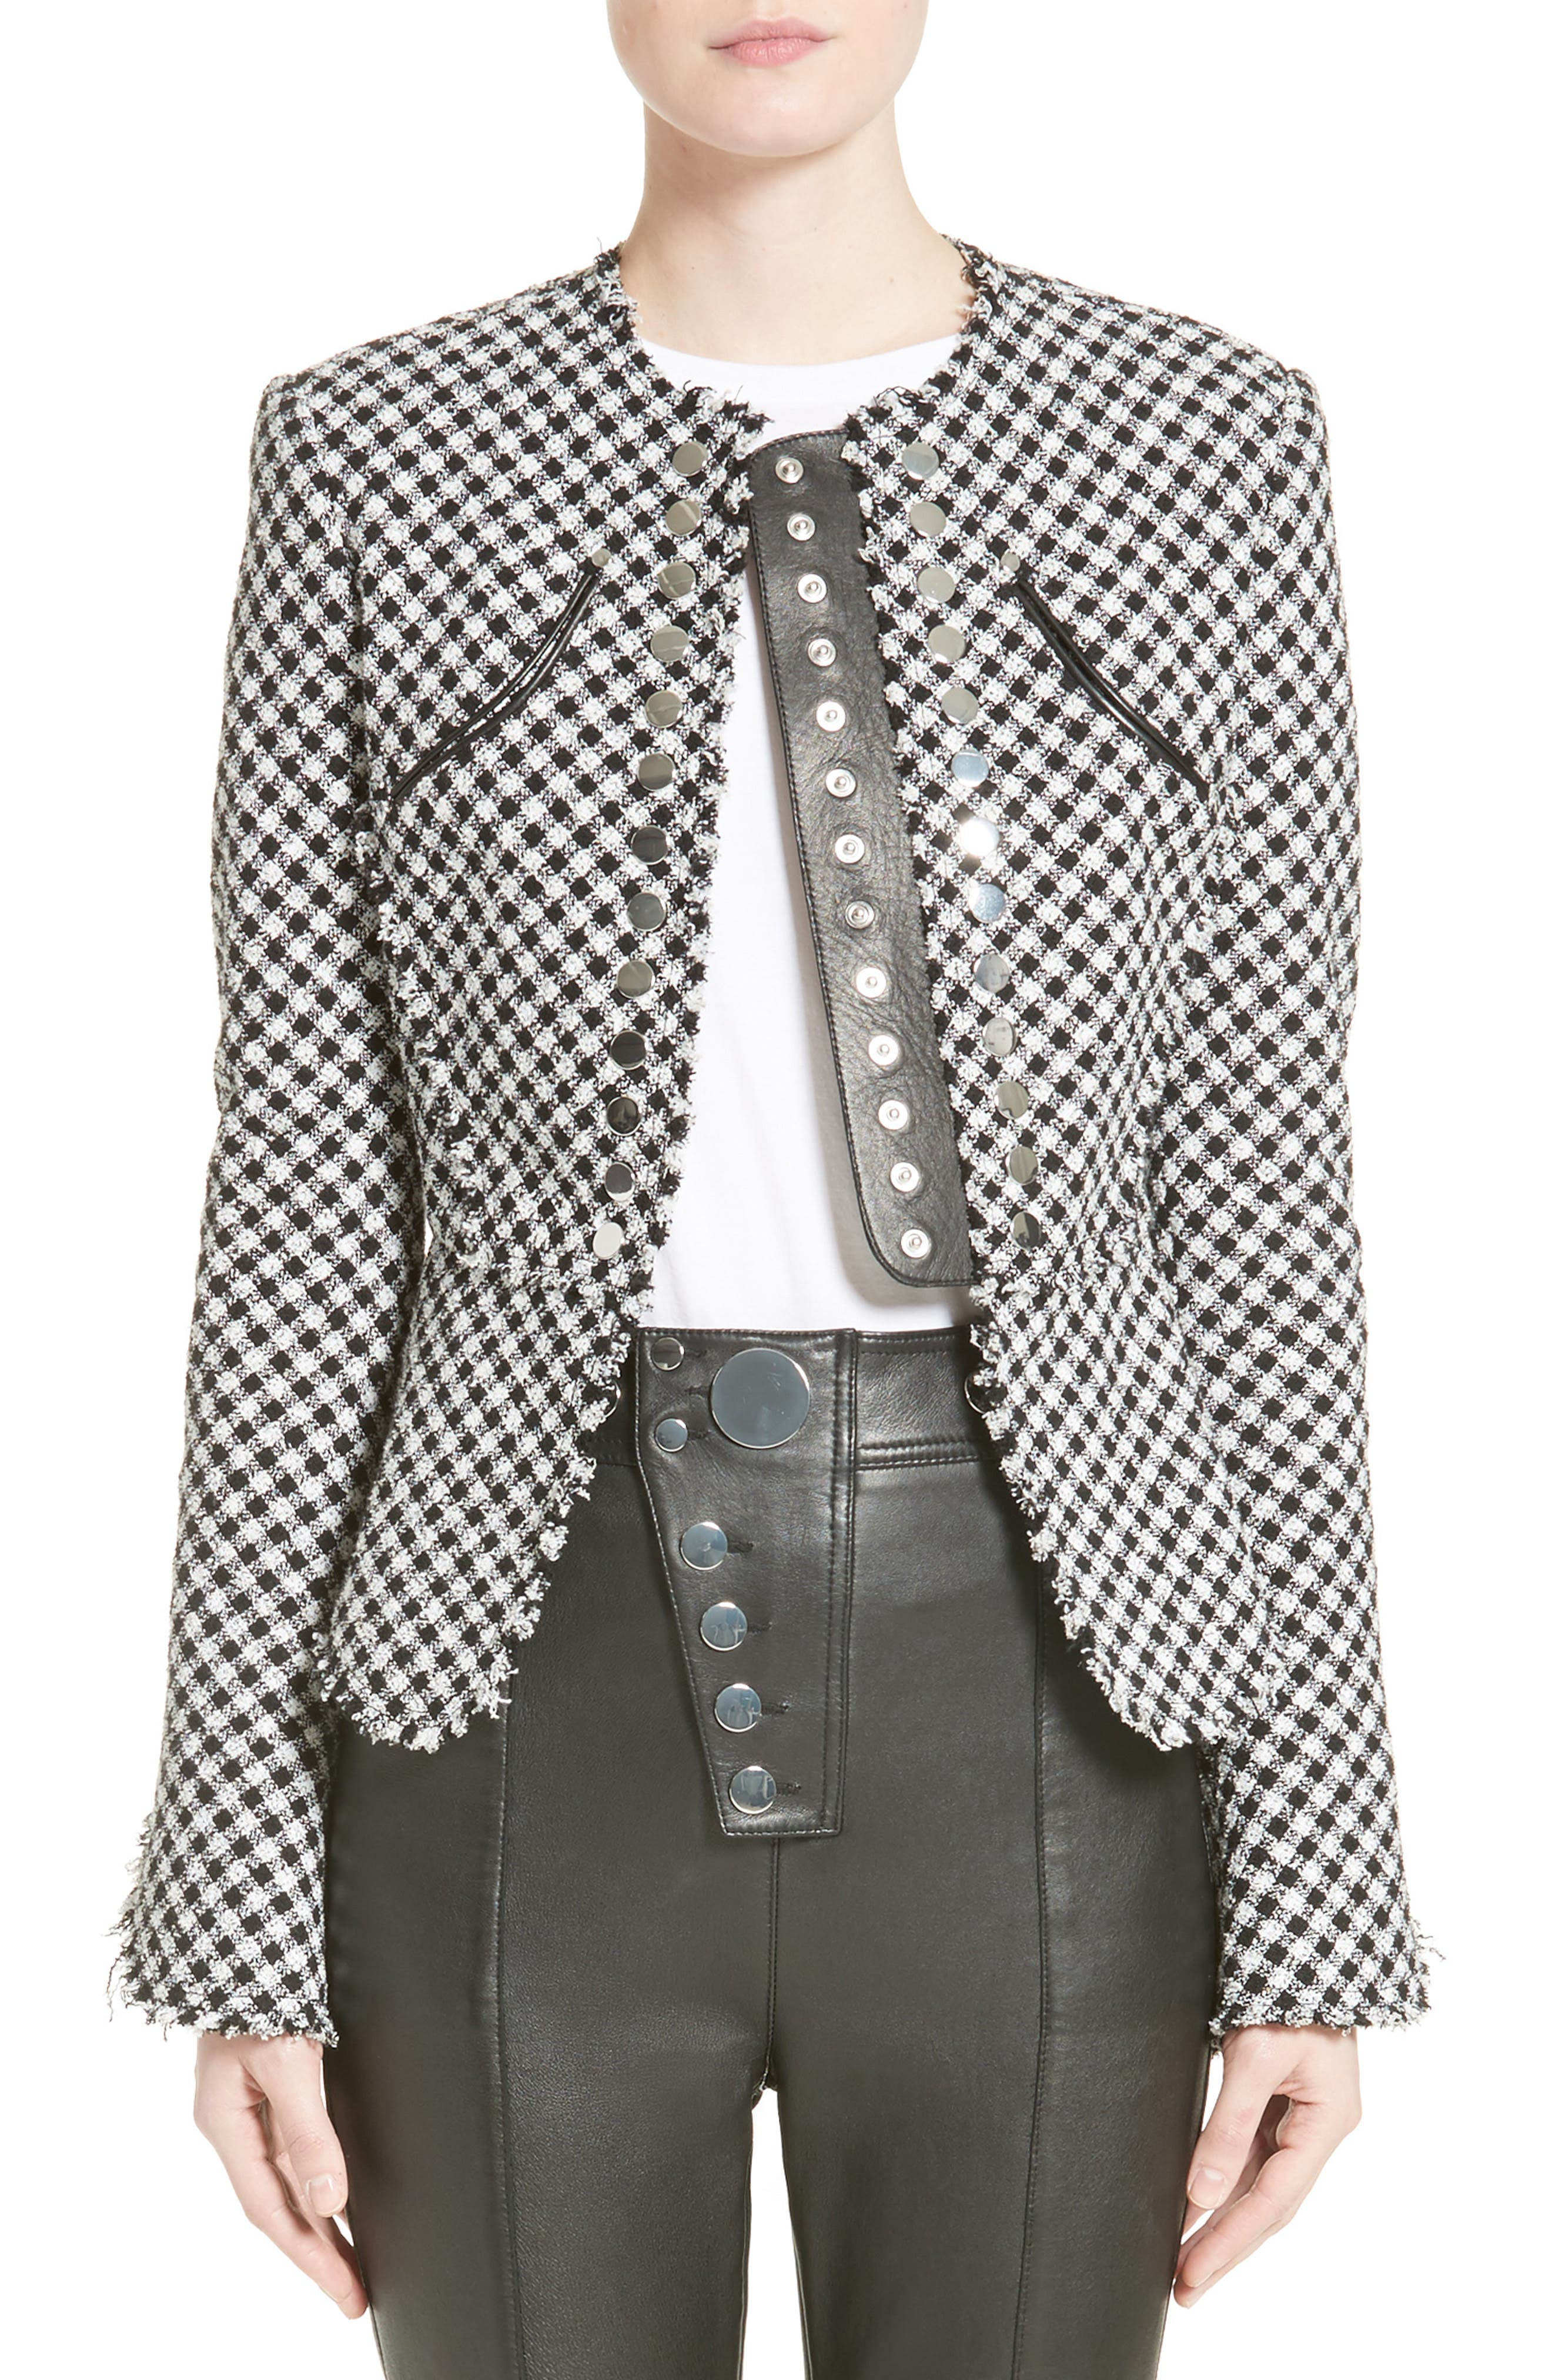 Alternate Image 1 Selected - Alexander Wang Check Tweed Peplum Jacket